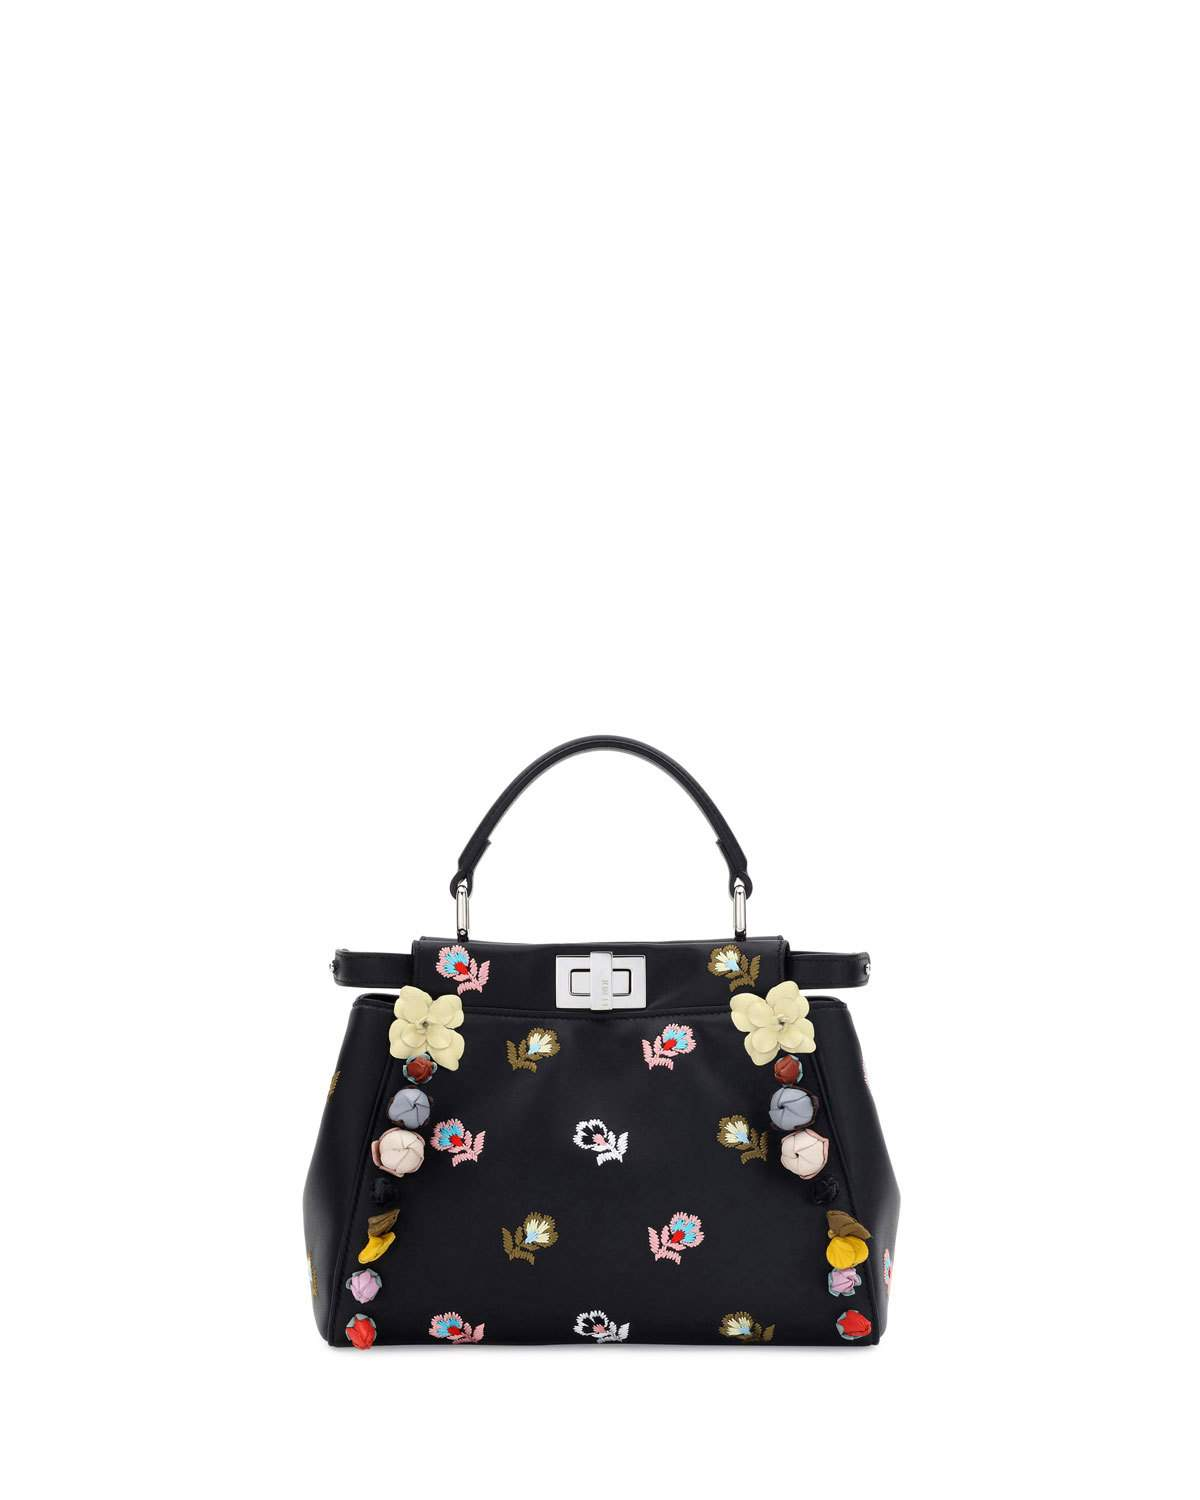 b95c318995 Fendi Resort 2017 Bag Collection Featuring Floral Bags